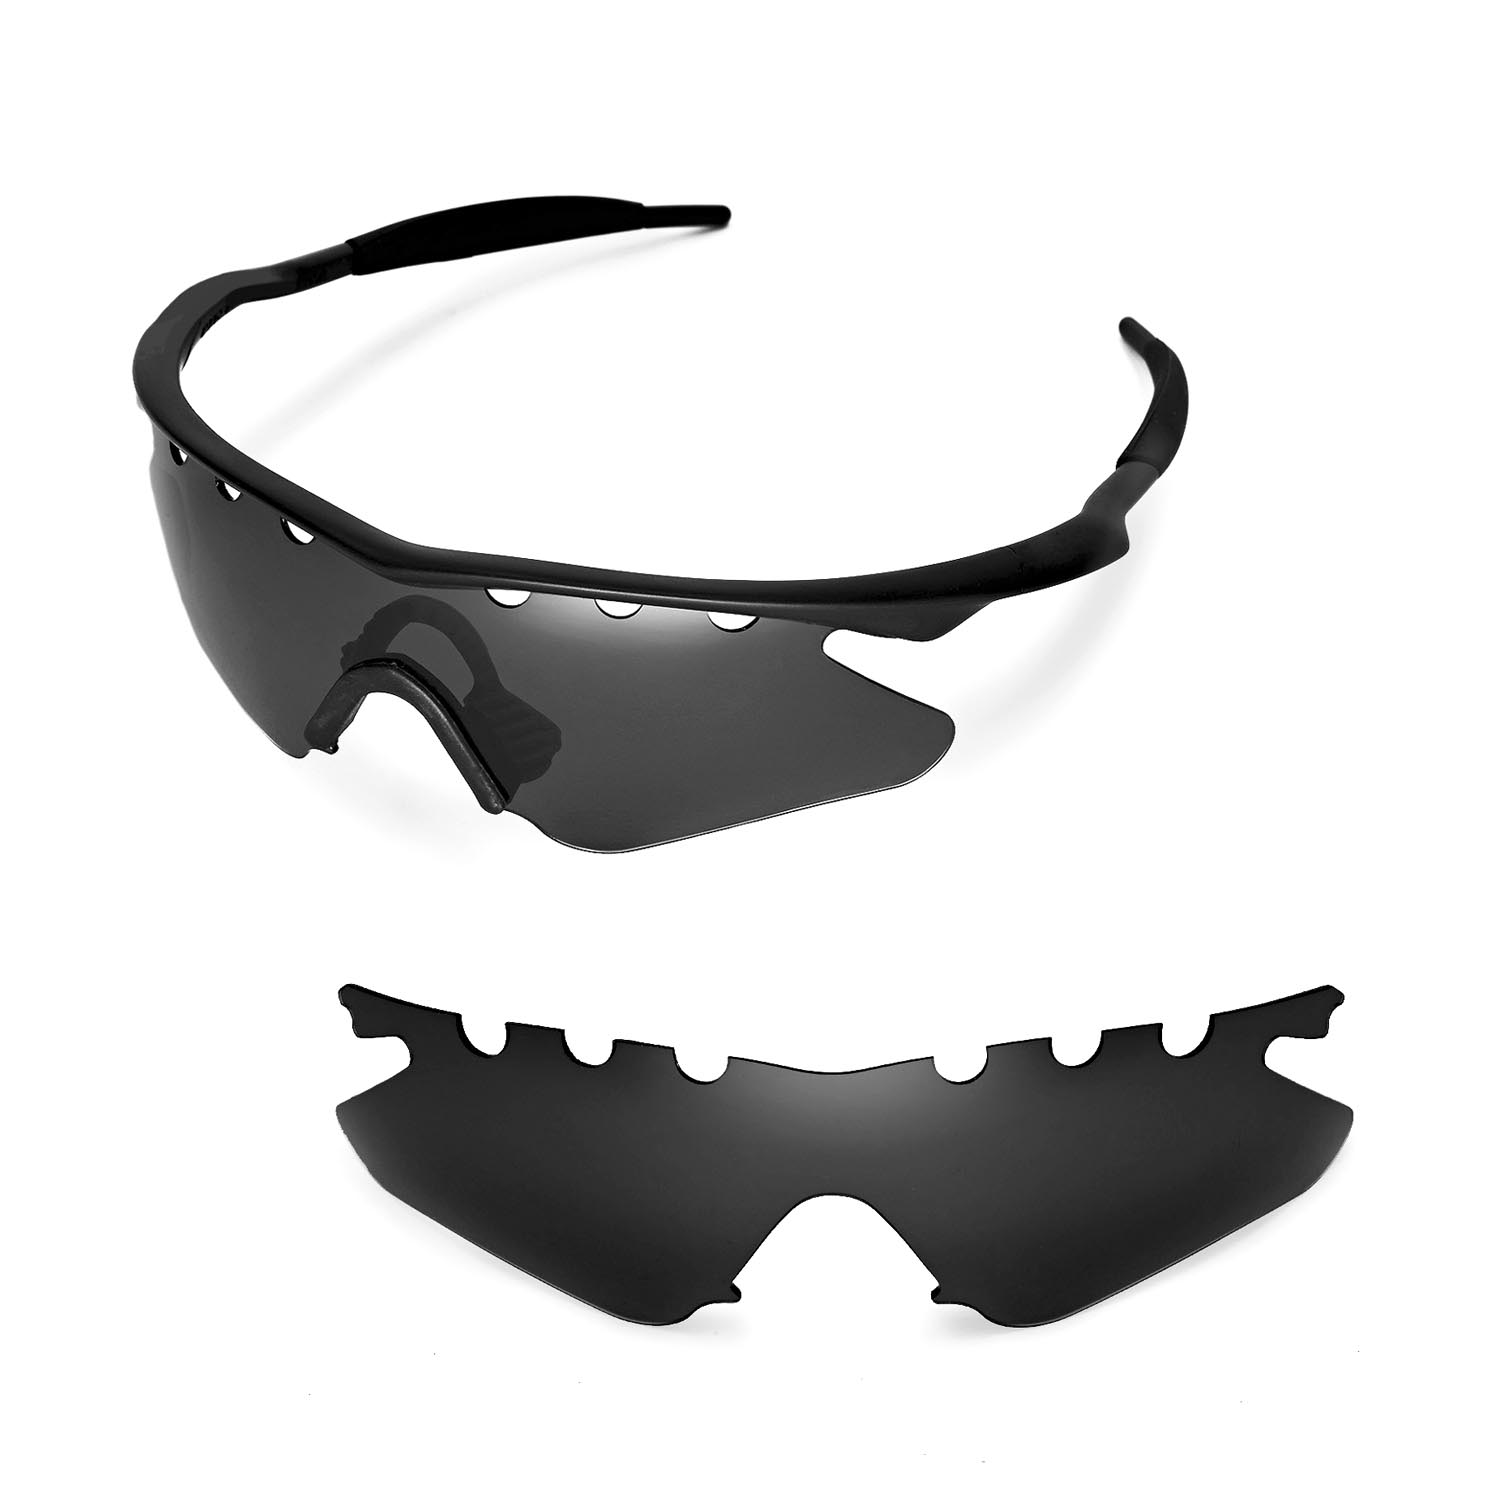 f861127e4f5 Details about Walleva Black Vented Replacement Lenses For Oakley M Frame  Heater Sunglasses